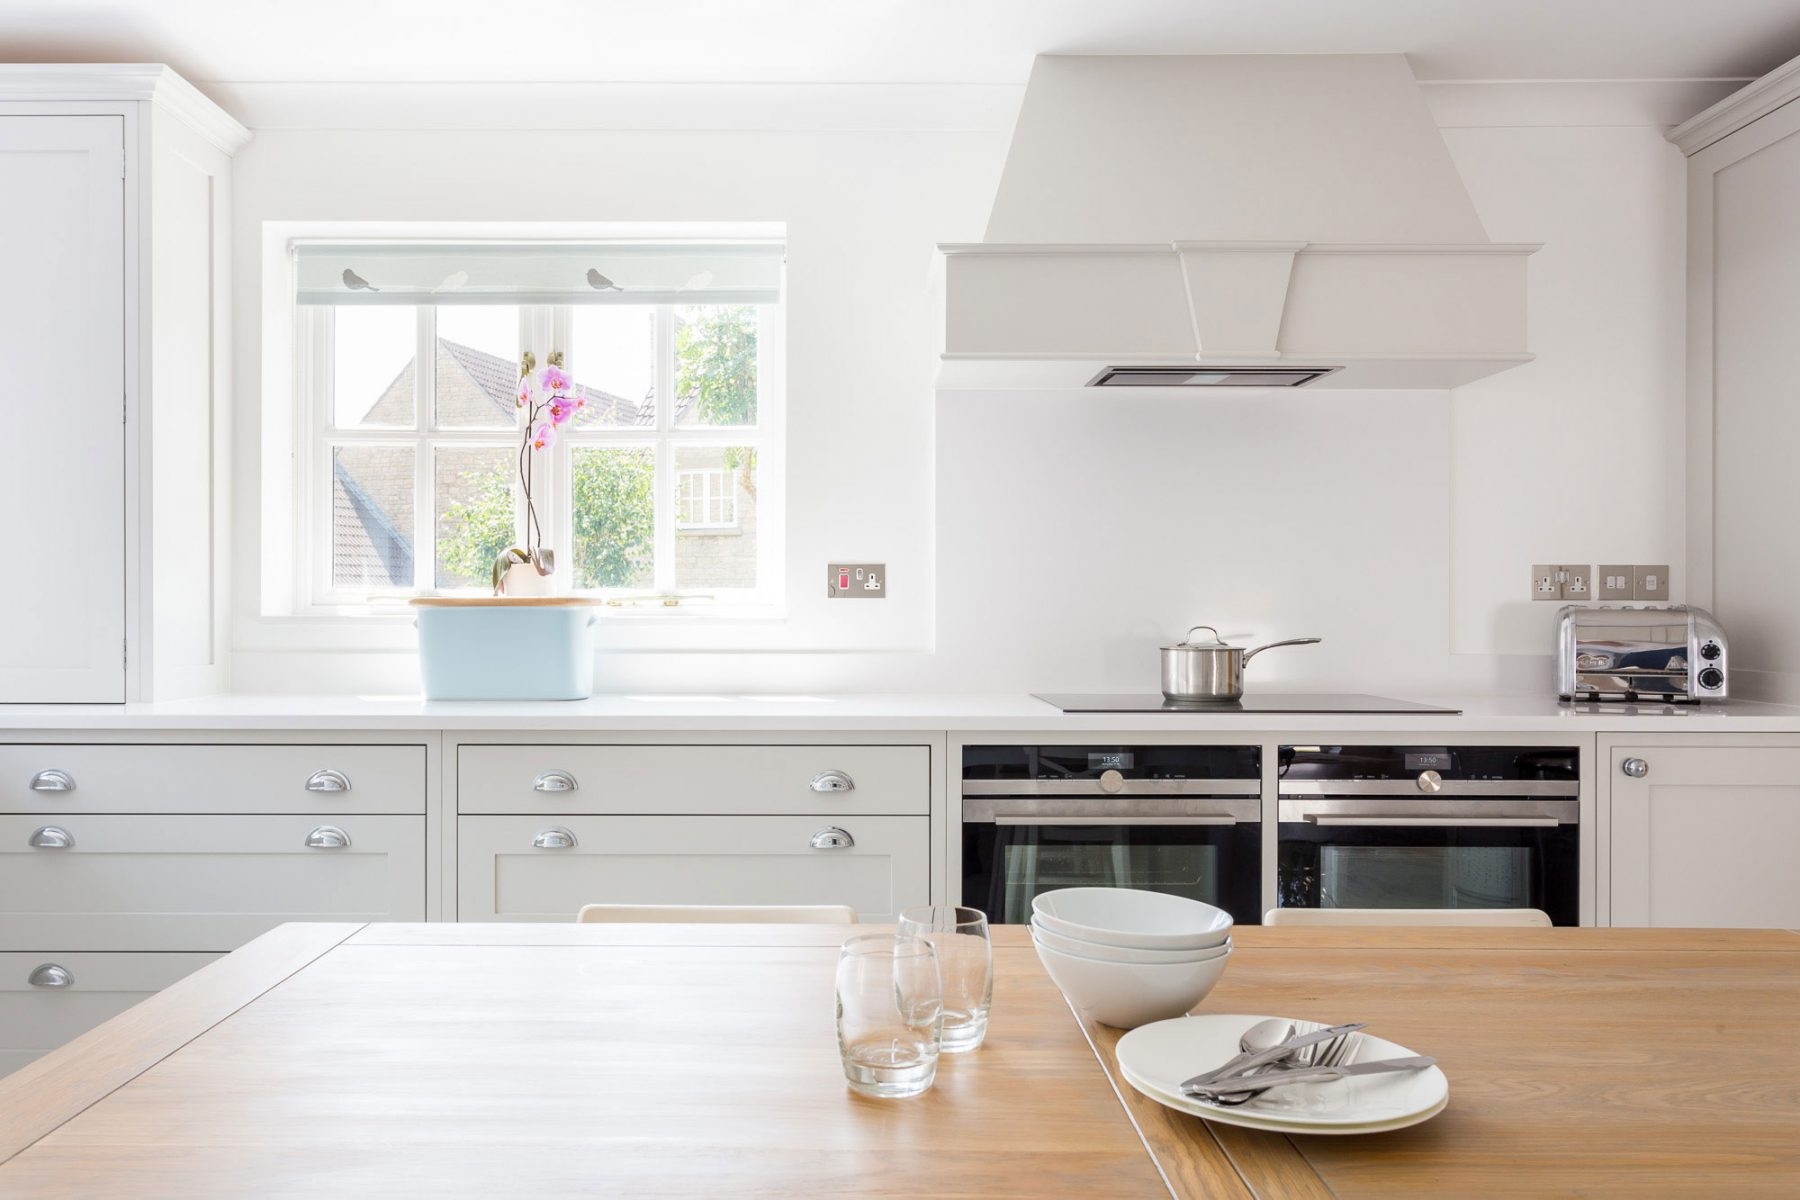 Contemporary white Shaker kitchen in Bath with bespoke cooker hood